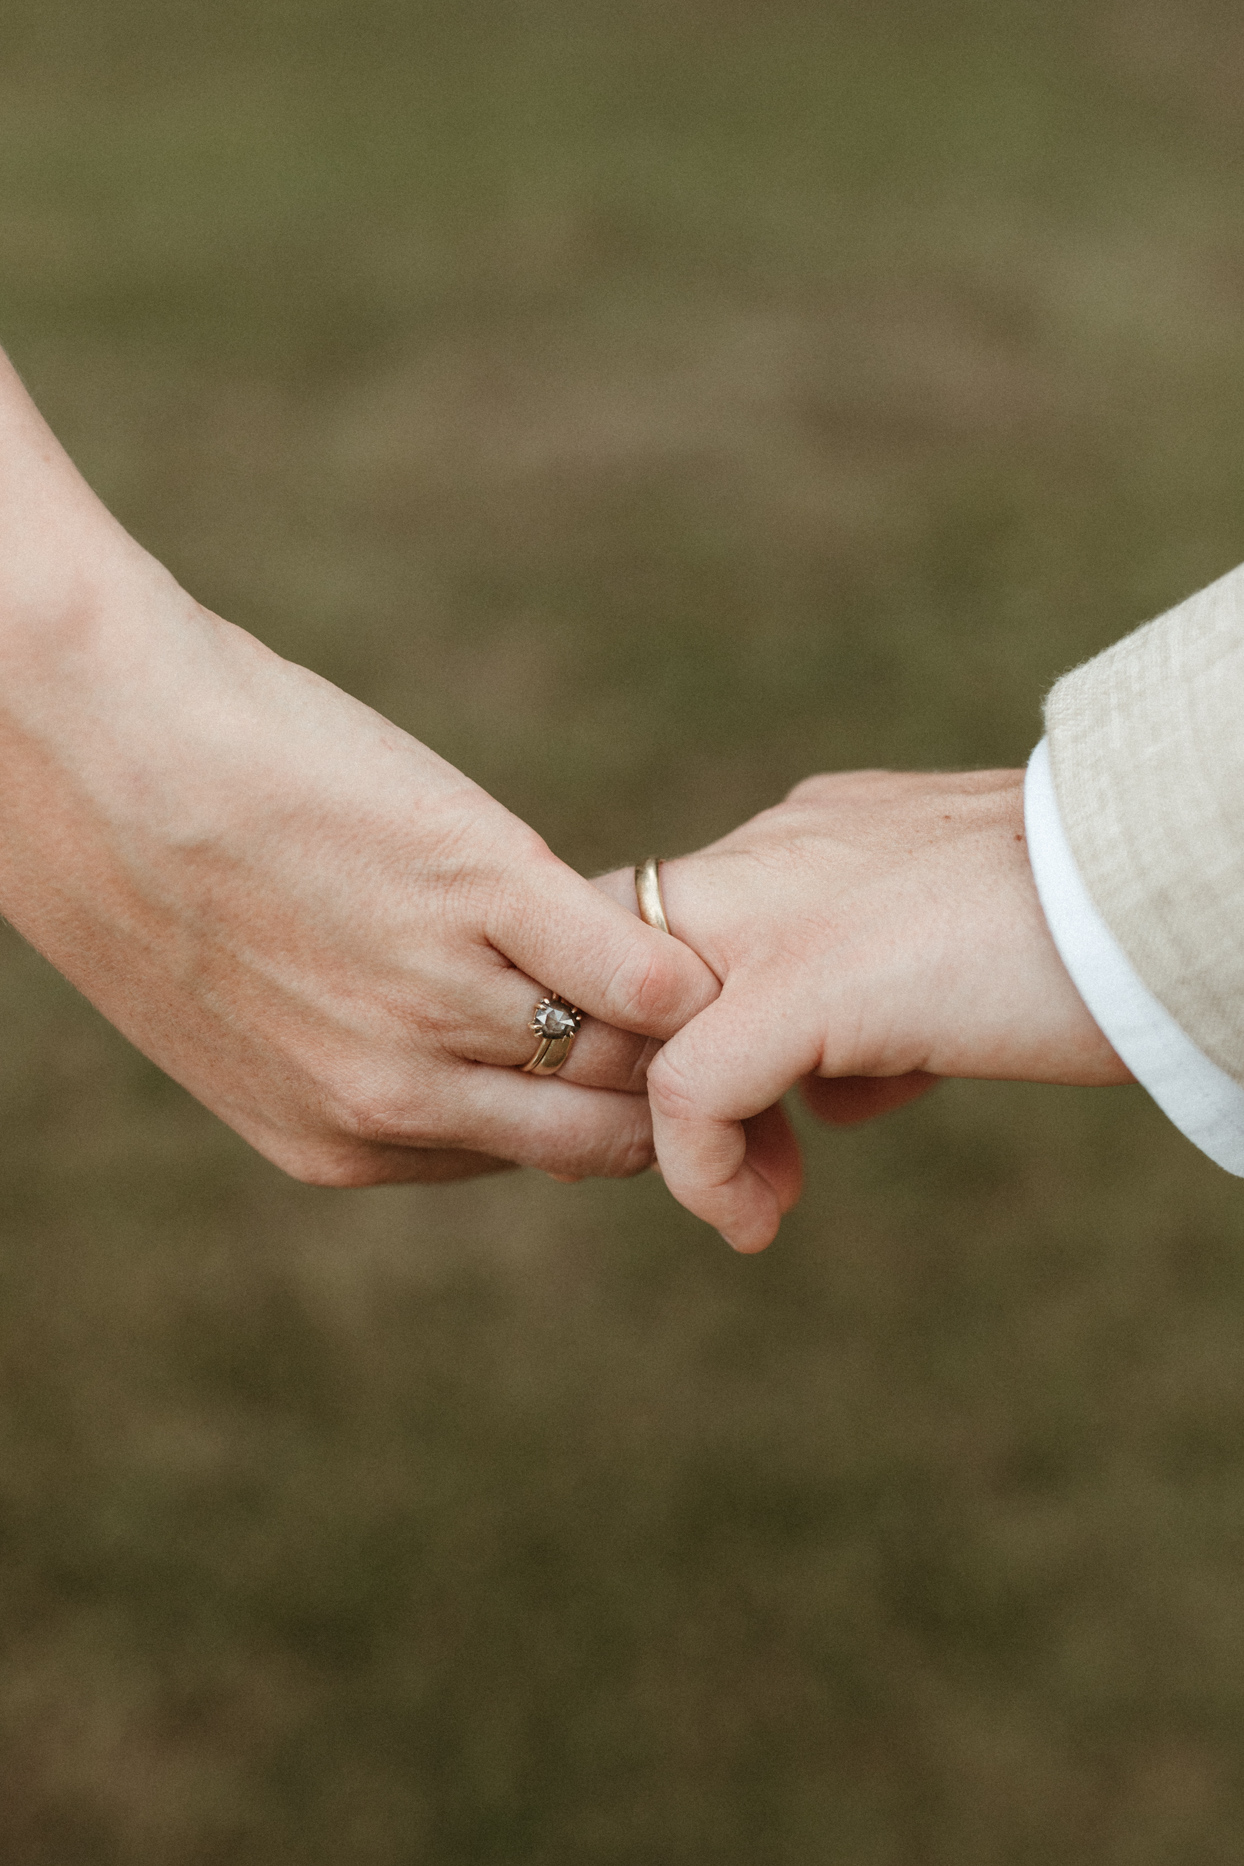 bride and groom hold hands wearing wedding rings